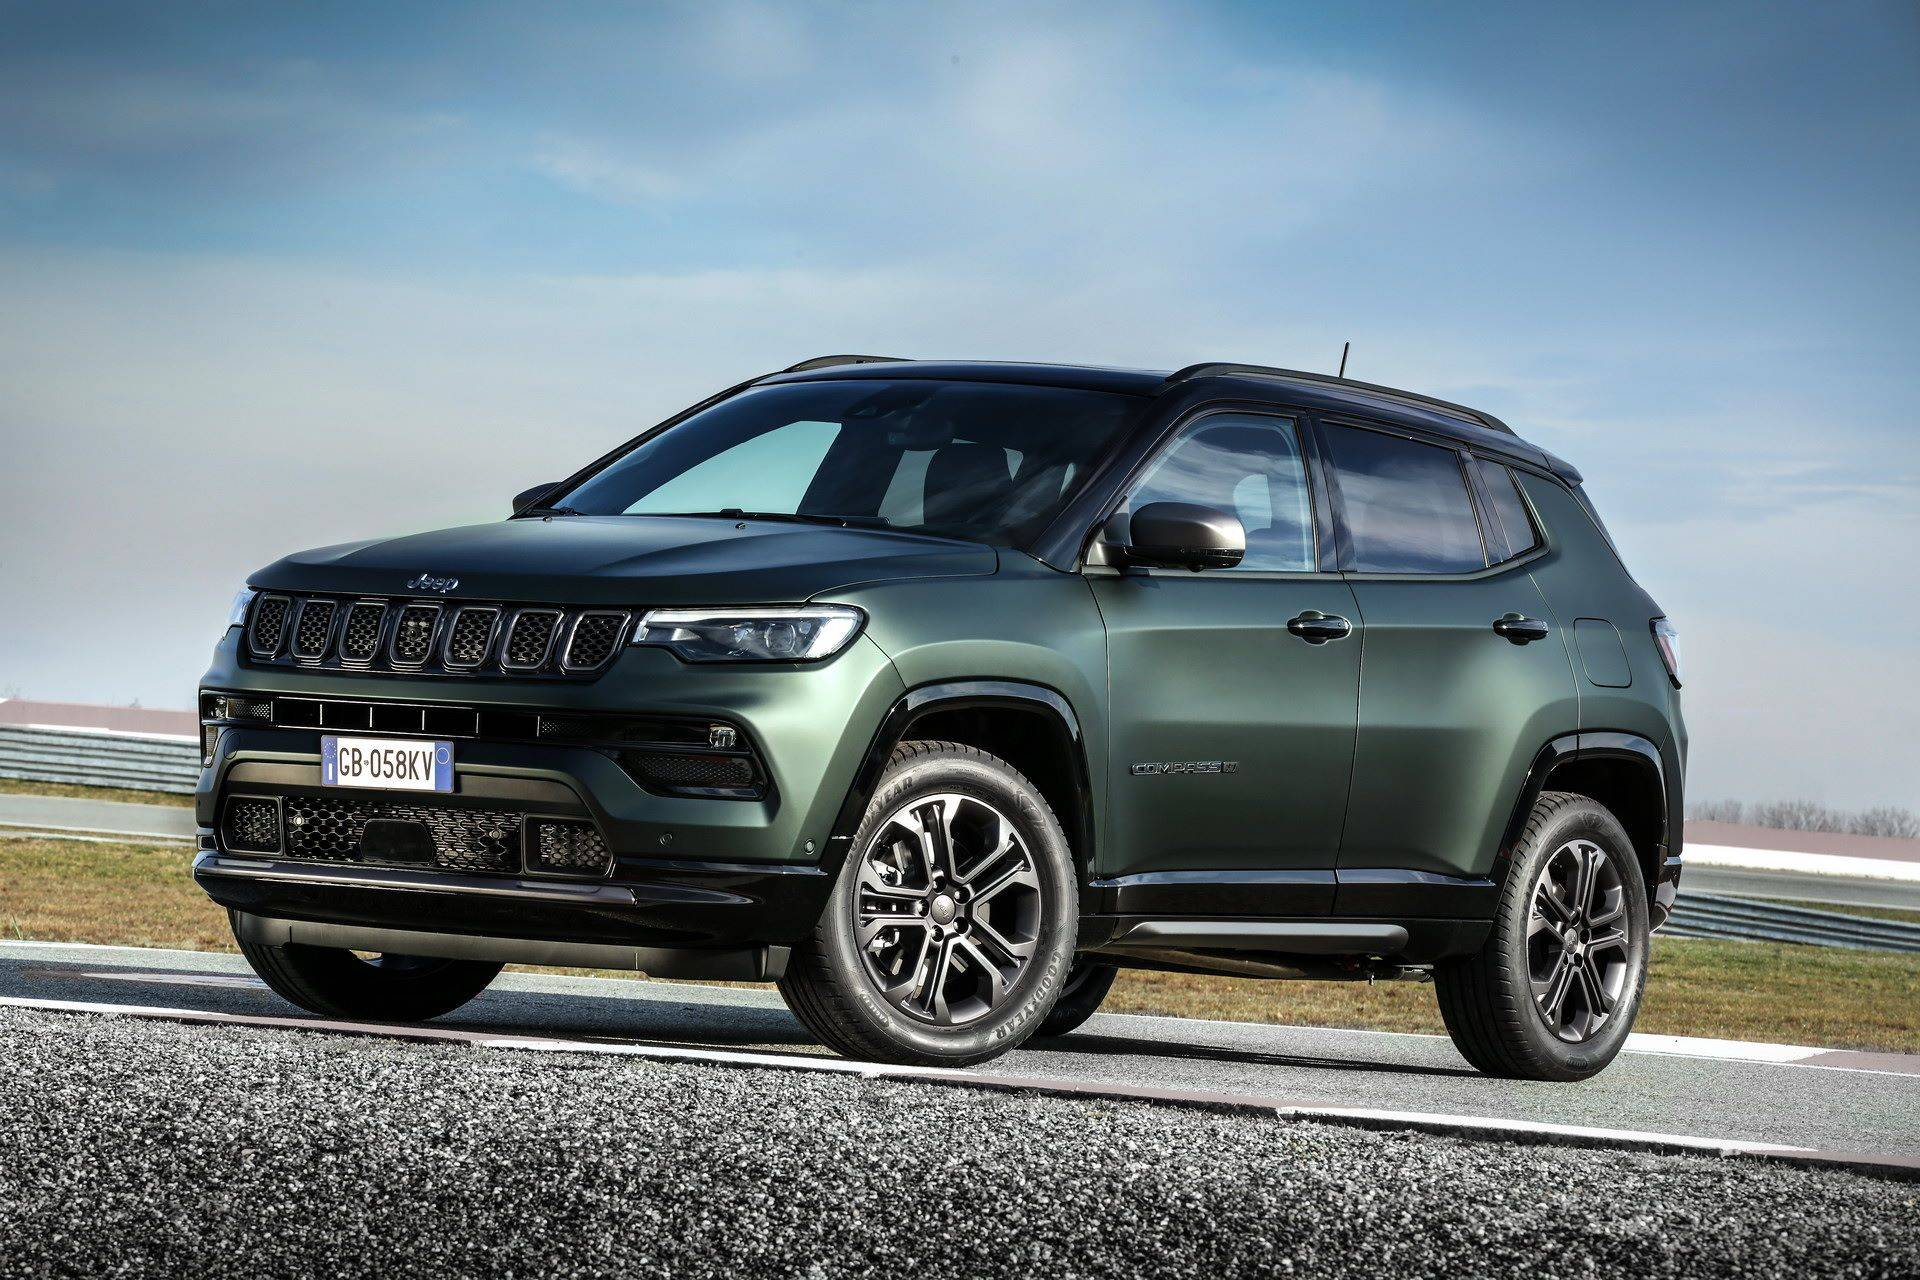 Jeep-Compass-facelift-2021-38